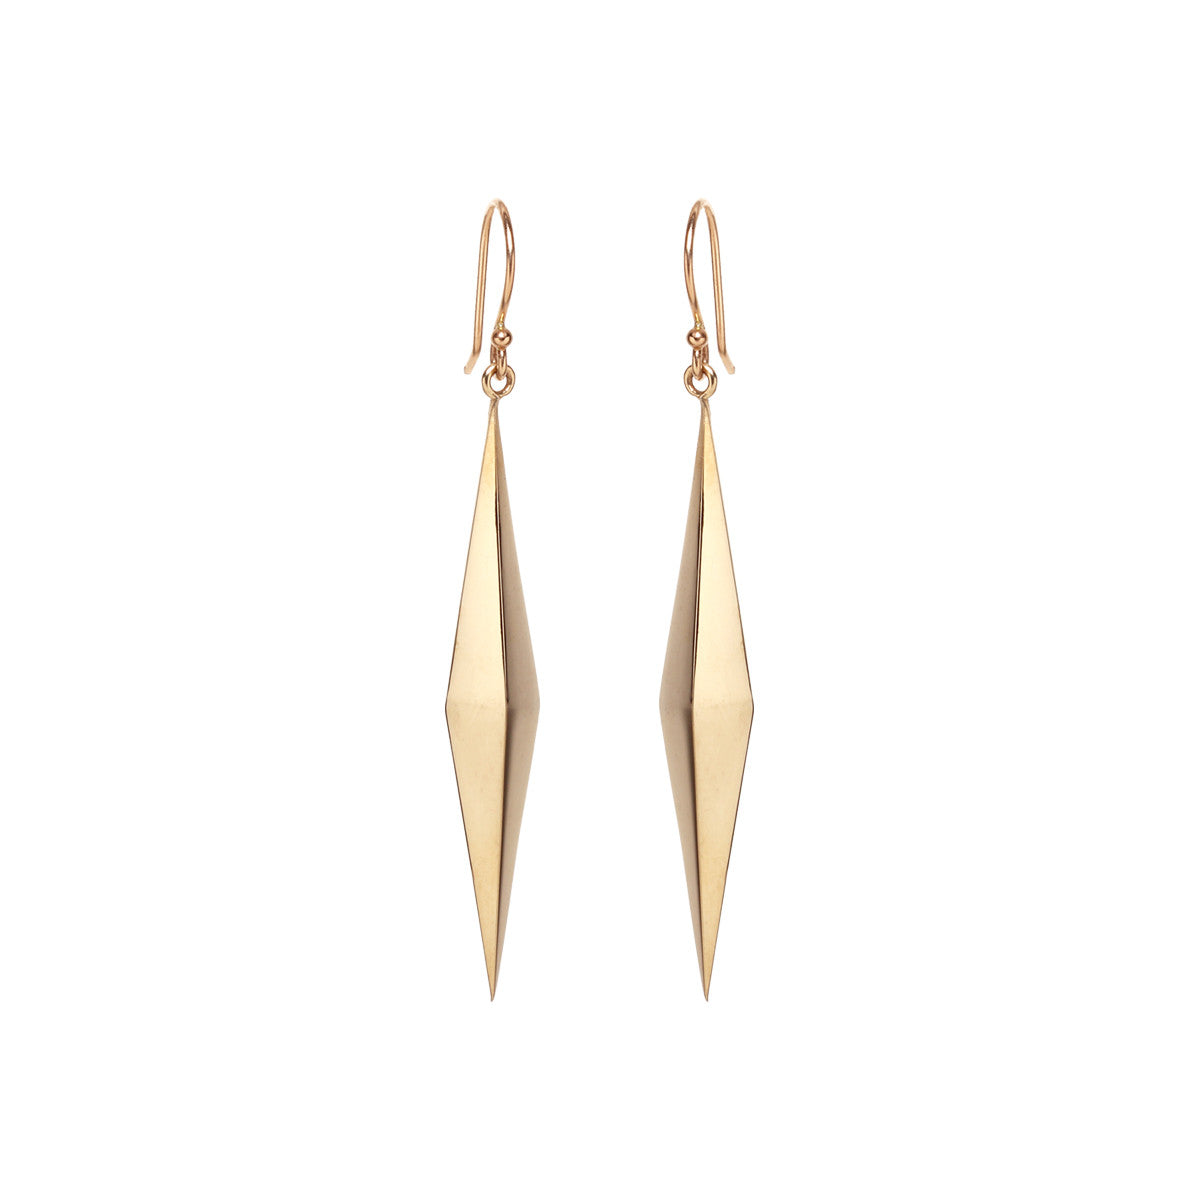 14k diamond shaped pyramid earrings